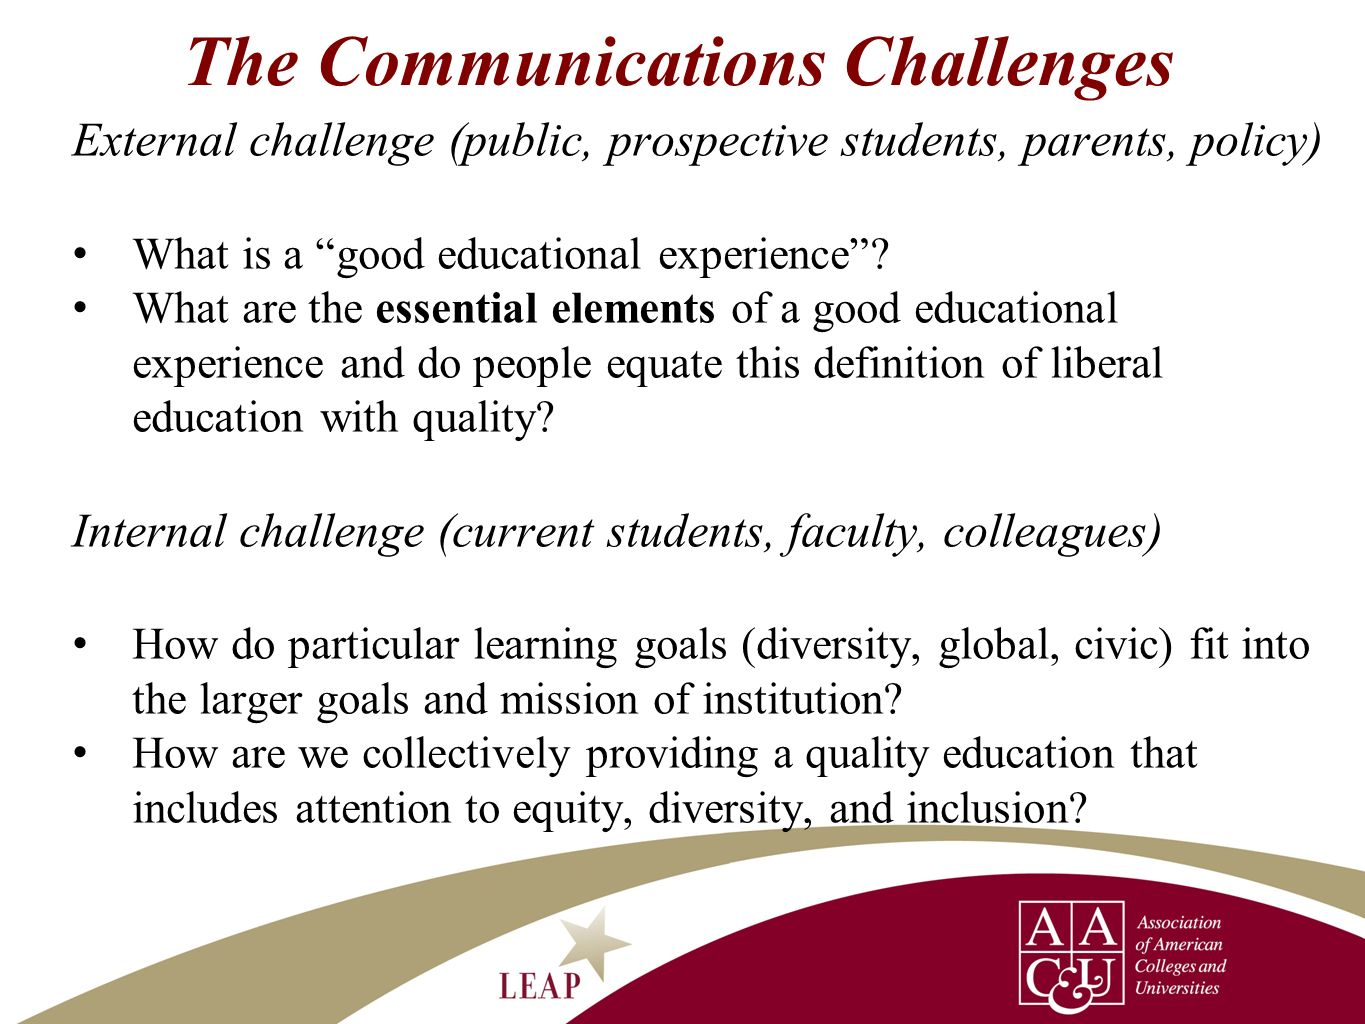 The Communications Challenges